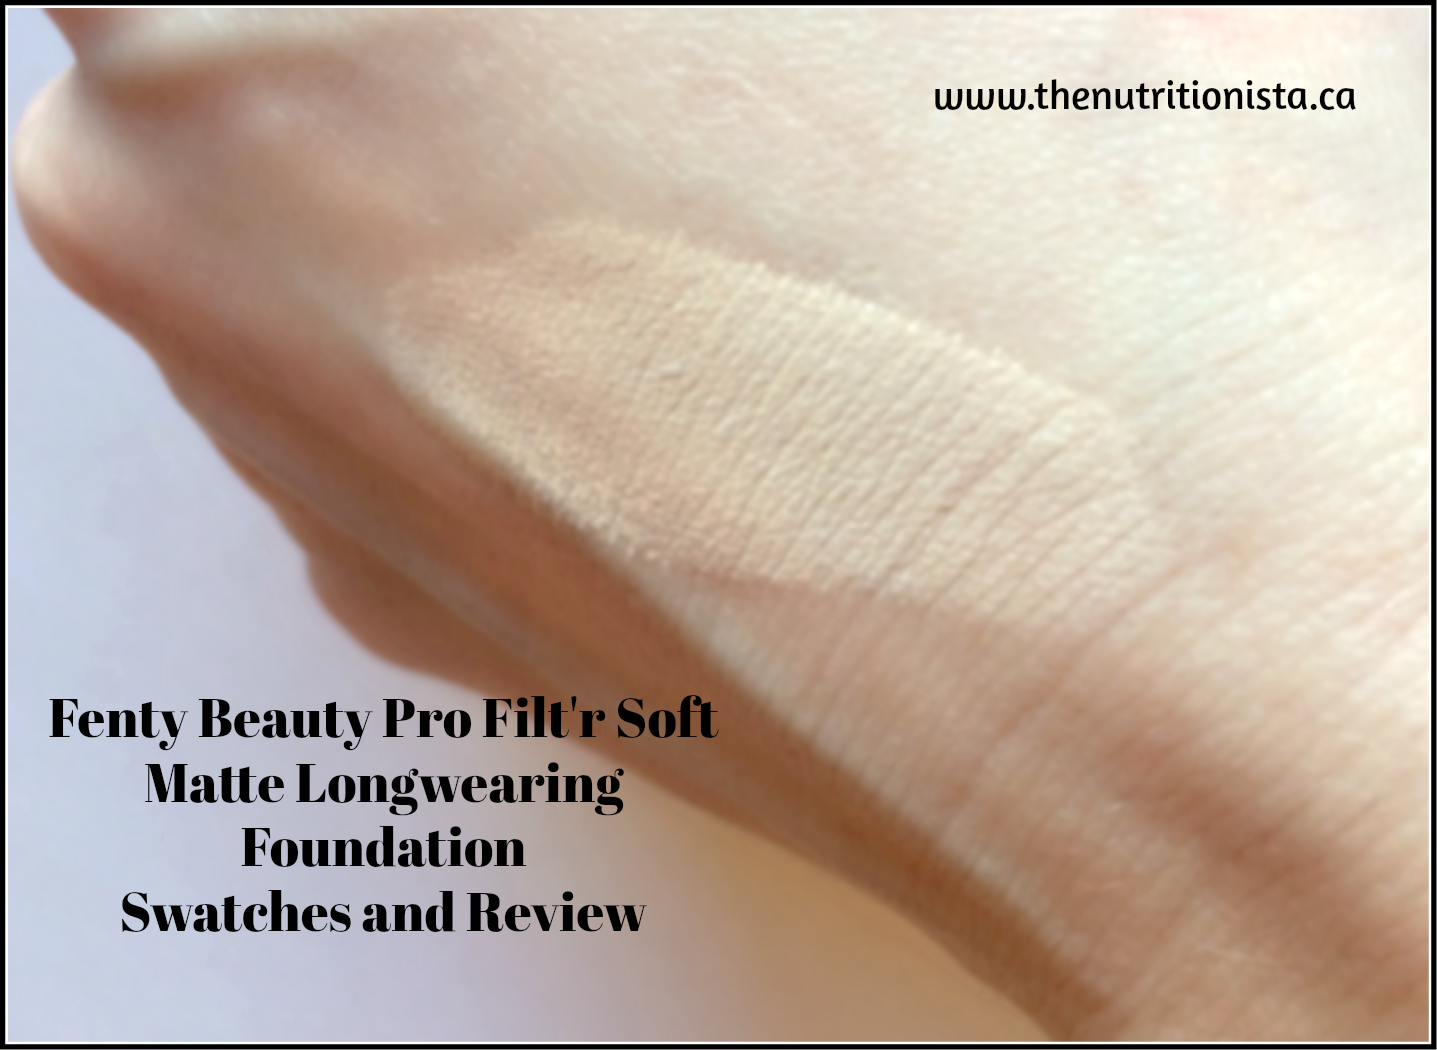 Fenty Beauty Pro Filt R Soft Matte Longwear Foundation Review Nutritionista